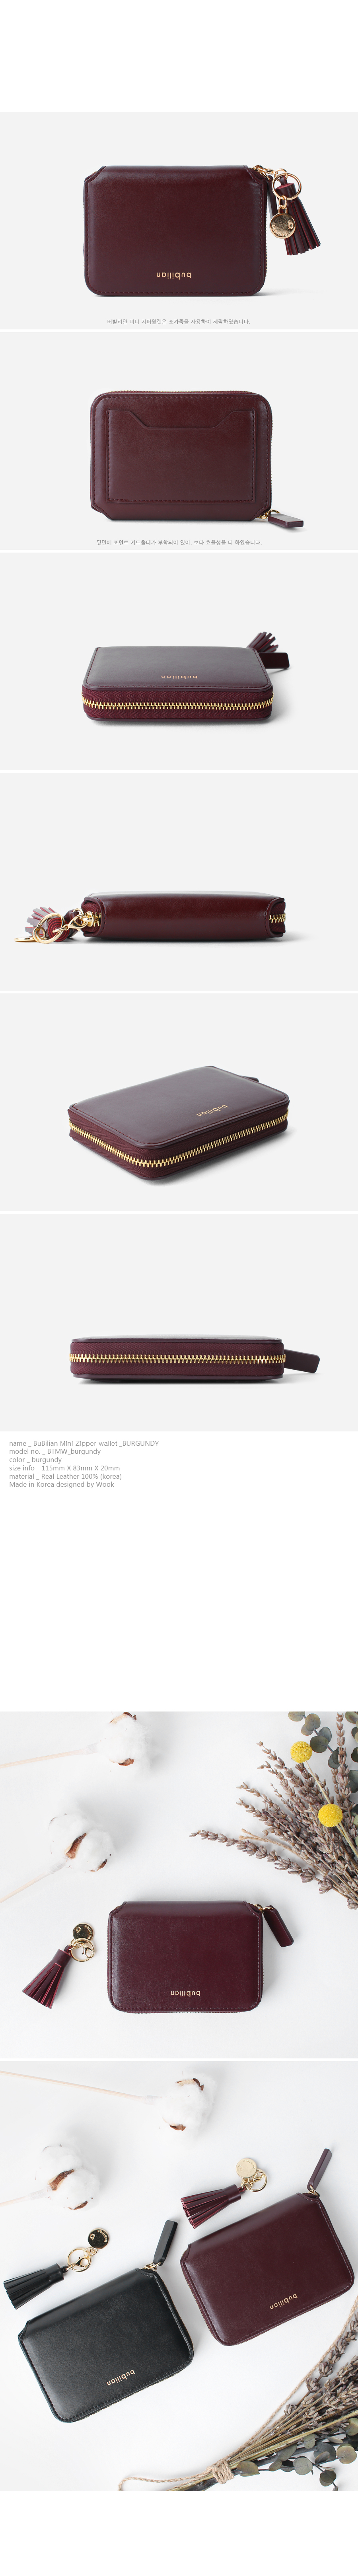 mini-wallet-burgundy-900-2.jpg